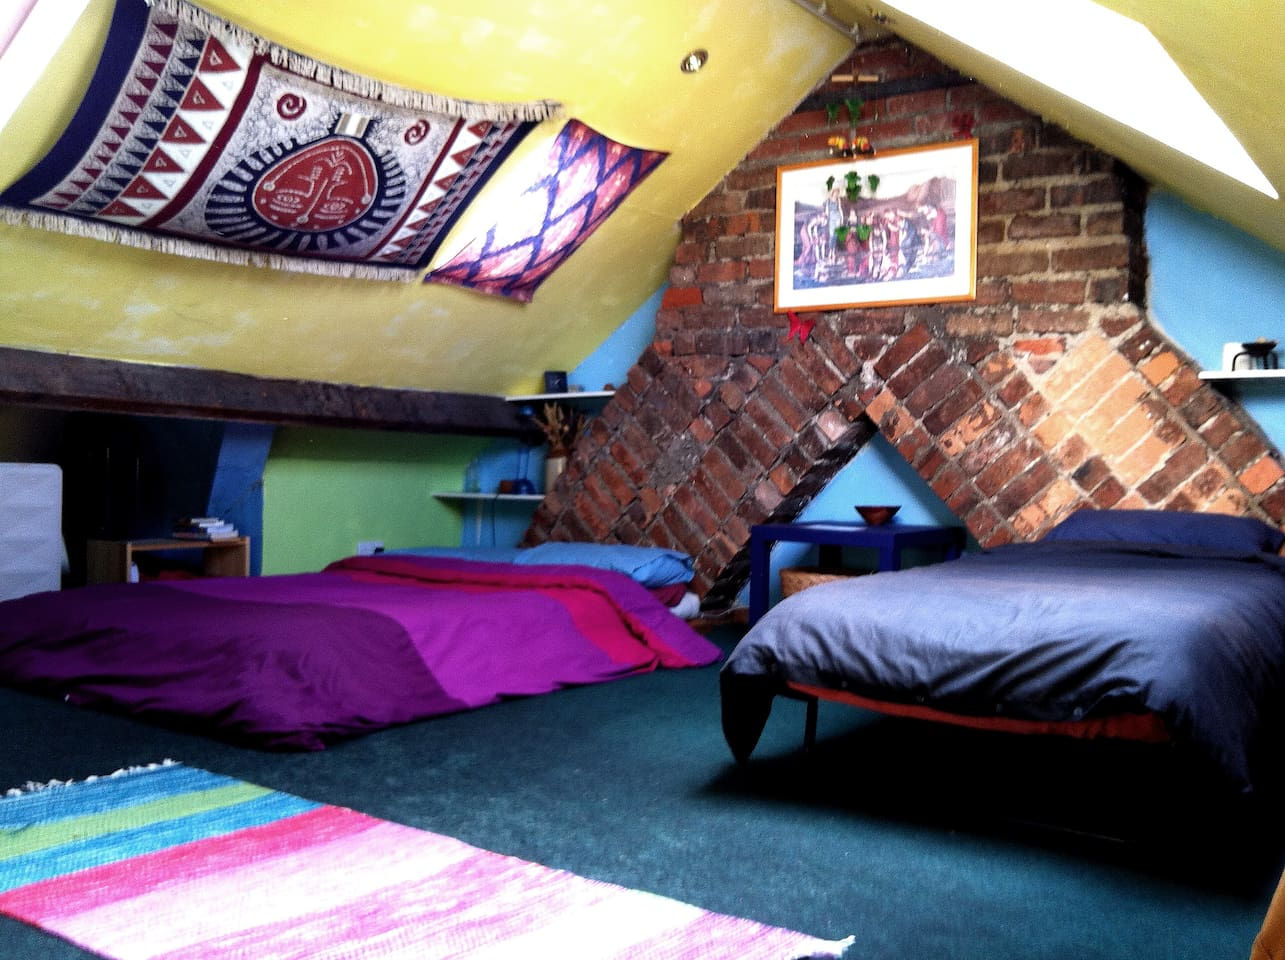 The attic room is bigger than it looks here!